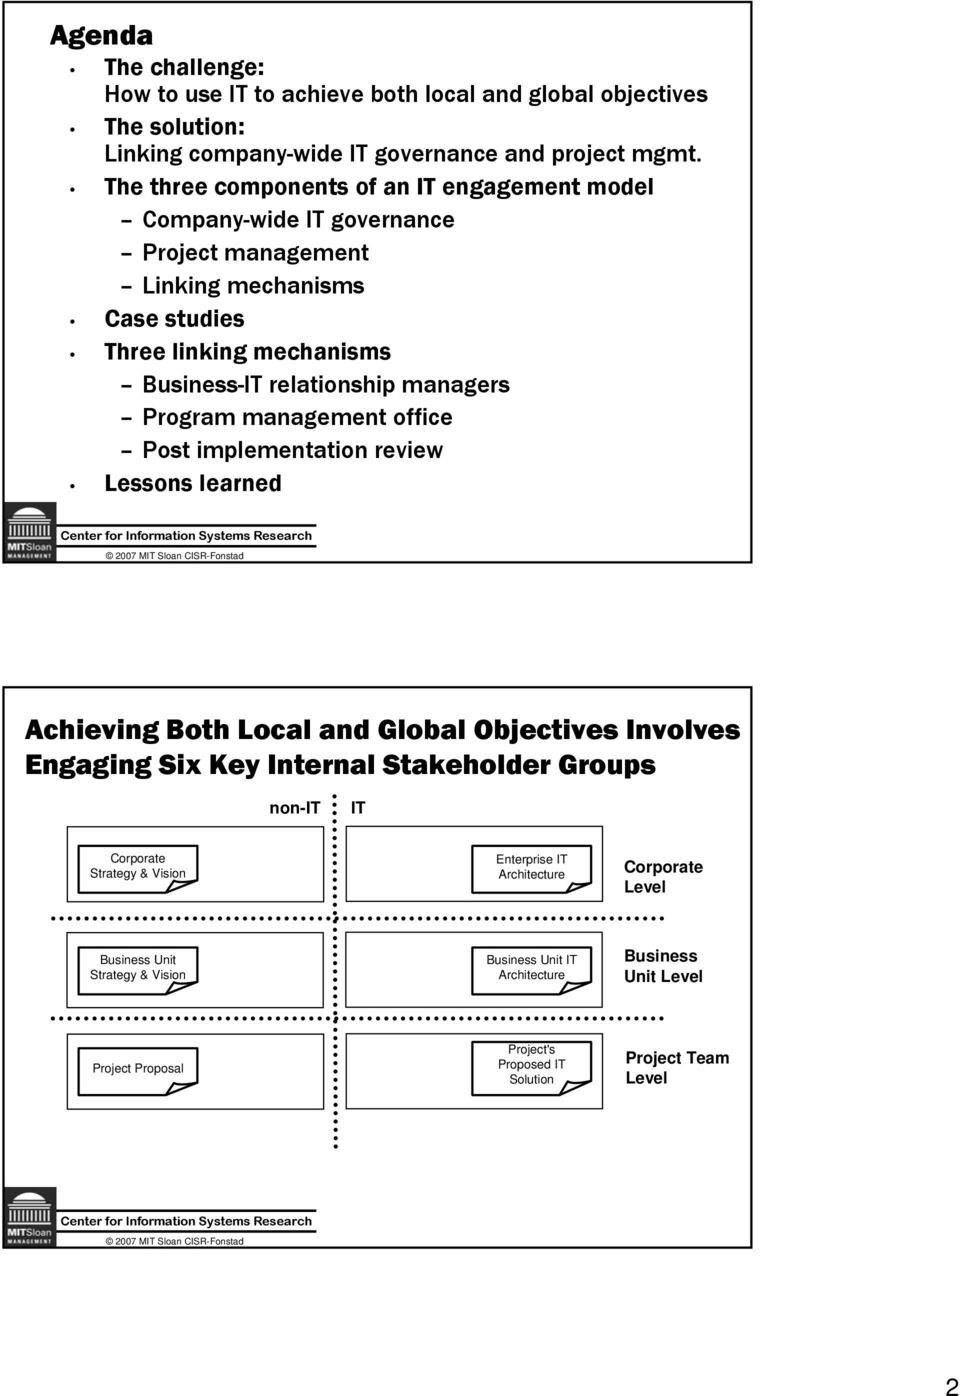 relationship managers Program management office Post implementation review Lessons learned Achieving Both Local and Global Objectives Involves Engaging